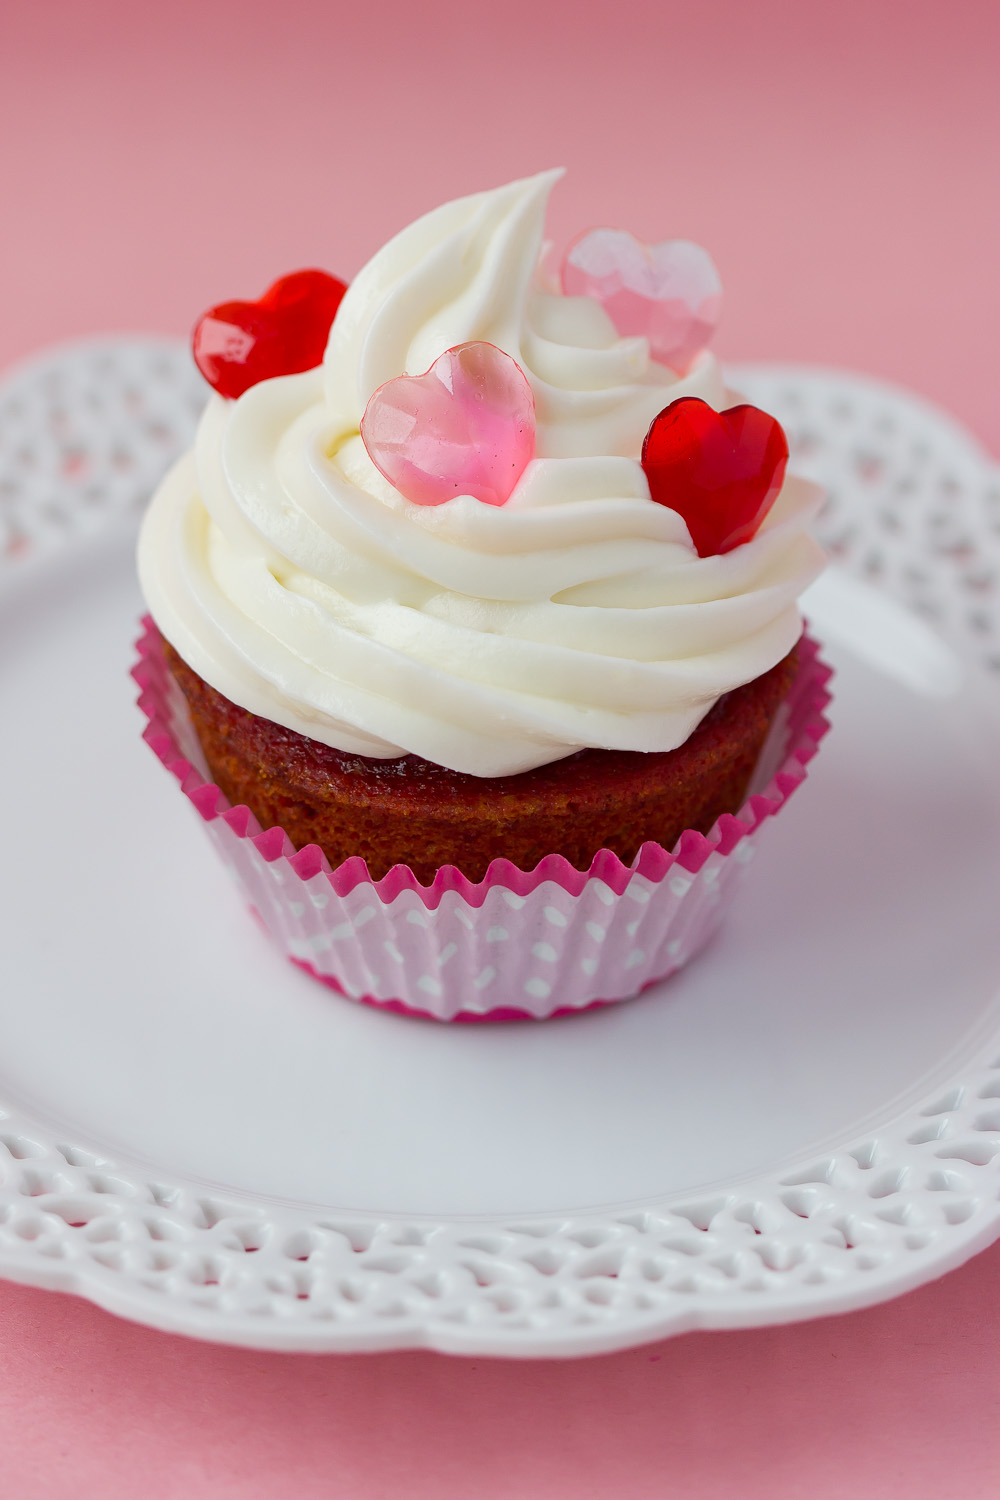 ALL NATURAL RED VELVET CUPCAKES